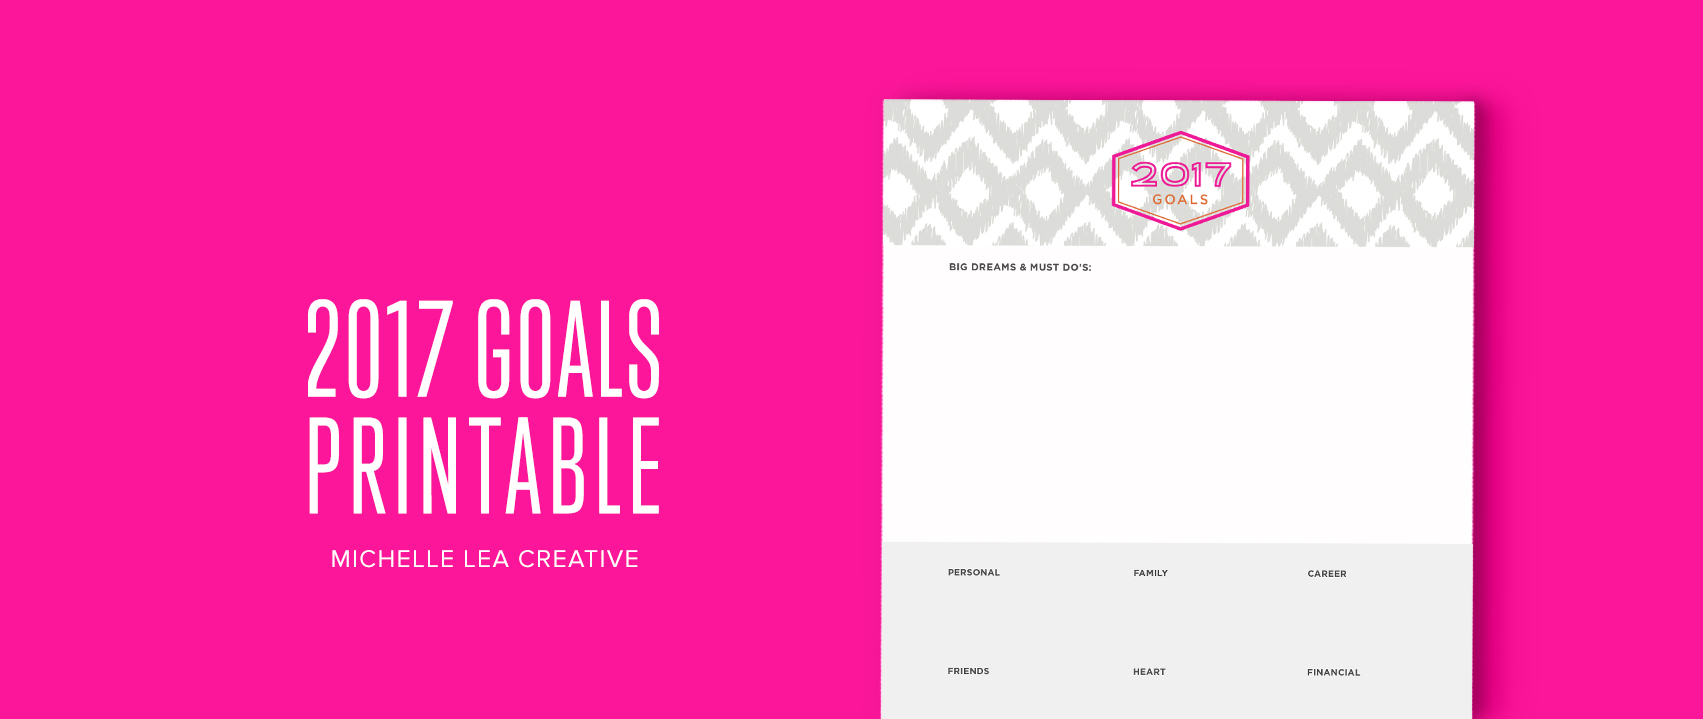 2017 Goals Printable - Plan your big dreams, personal, financial, family, heart, career, and friend goals.